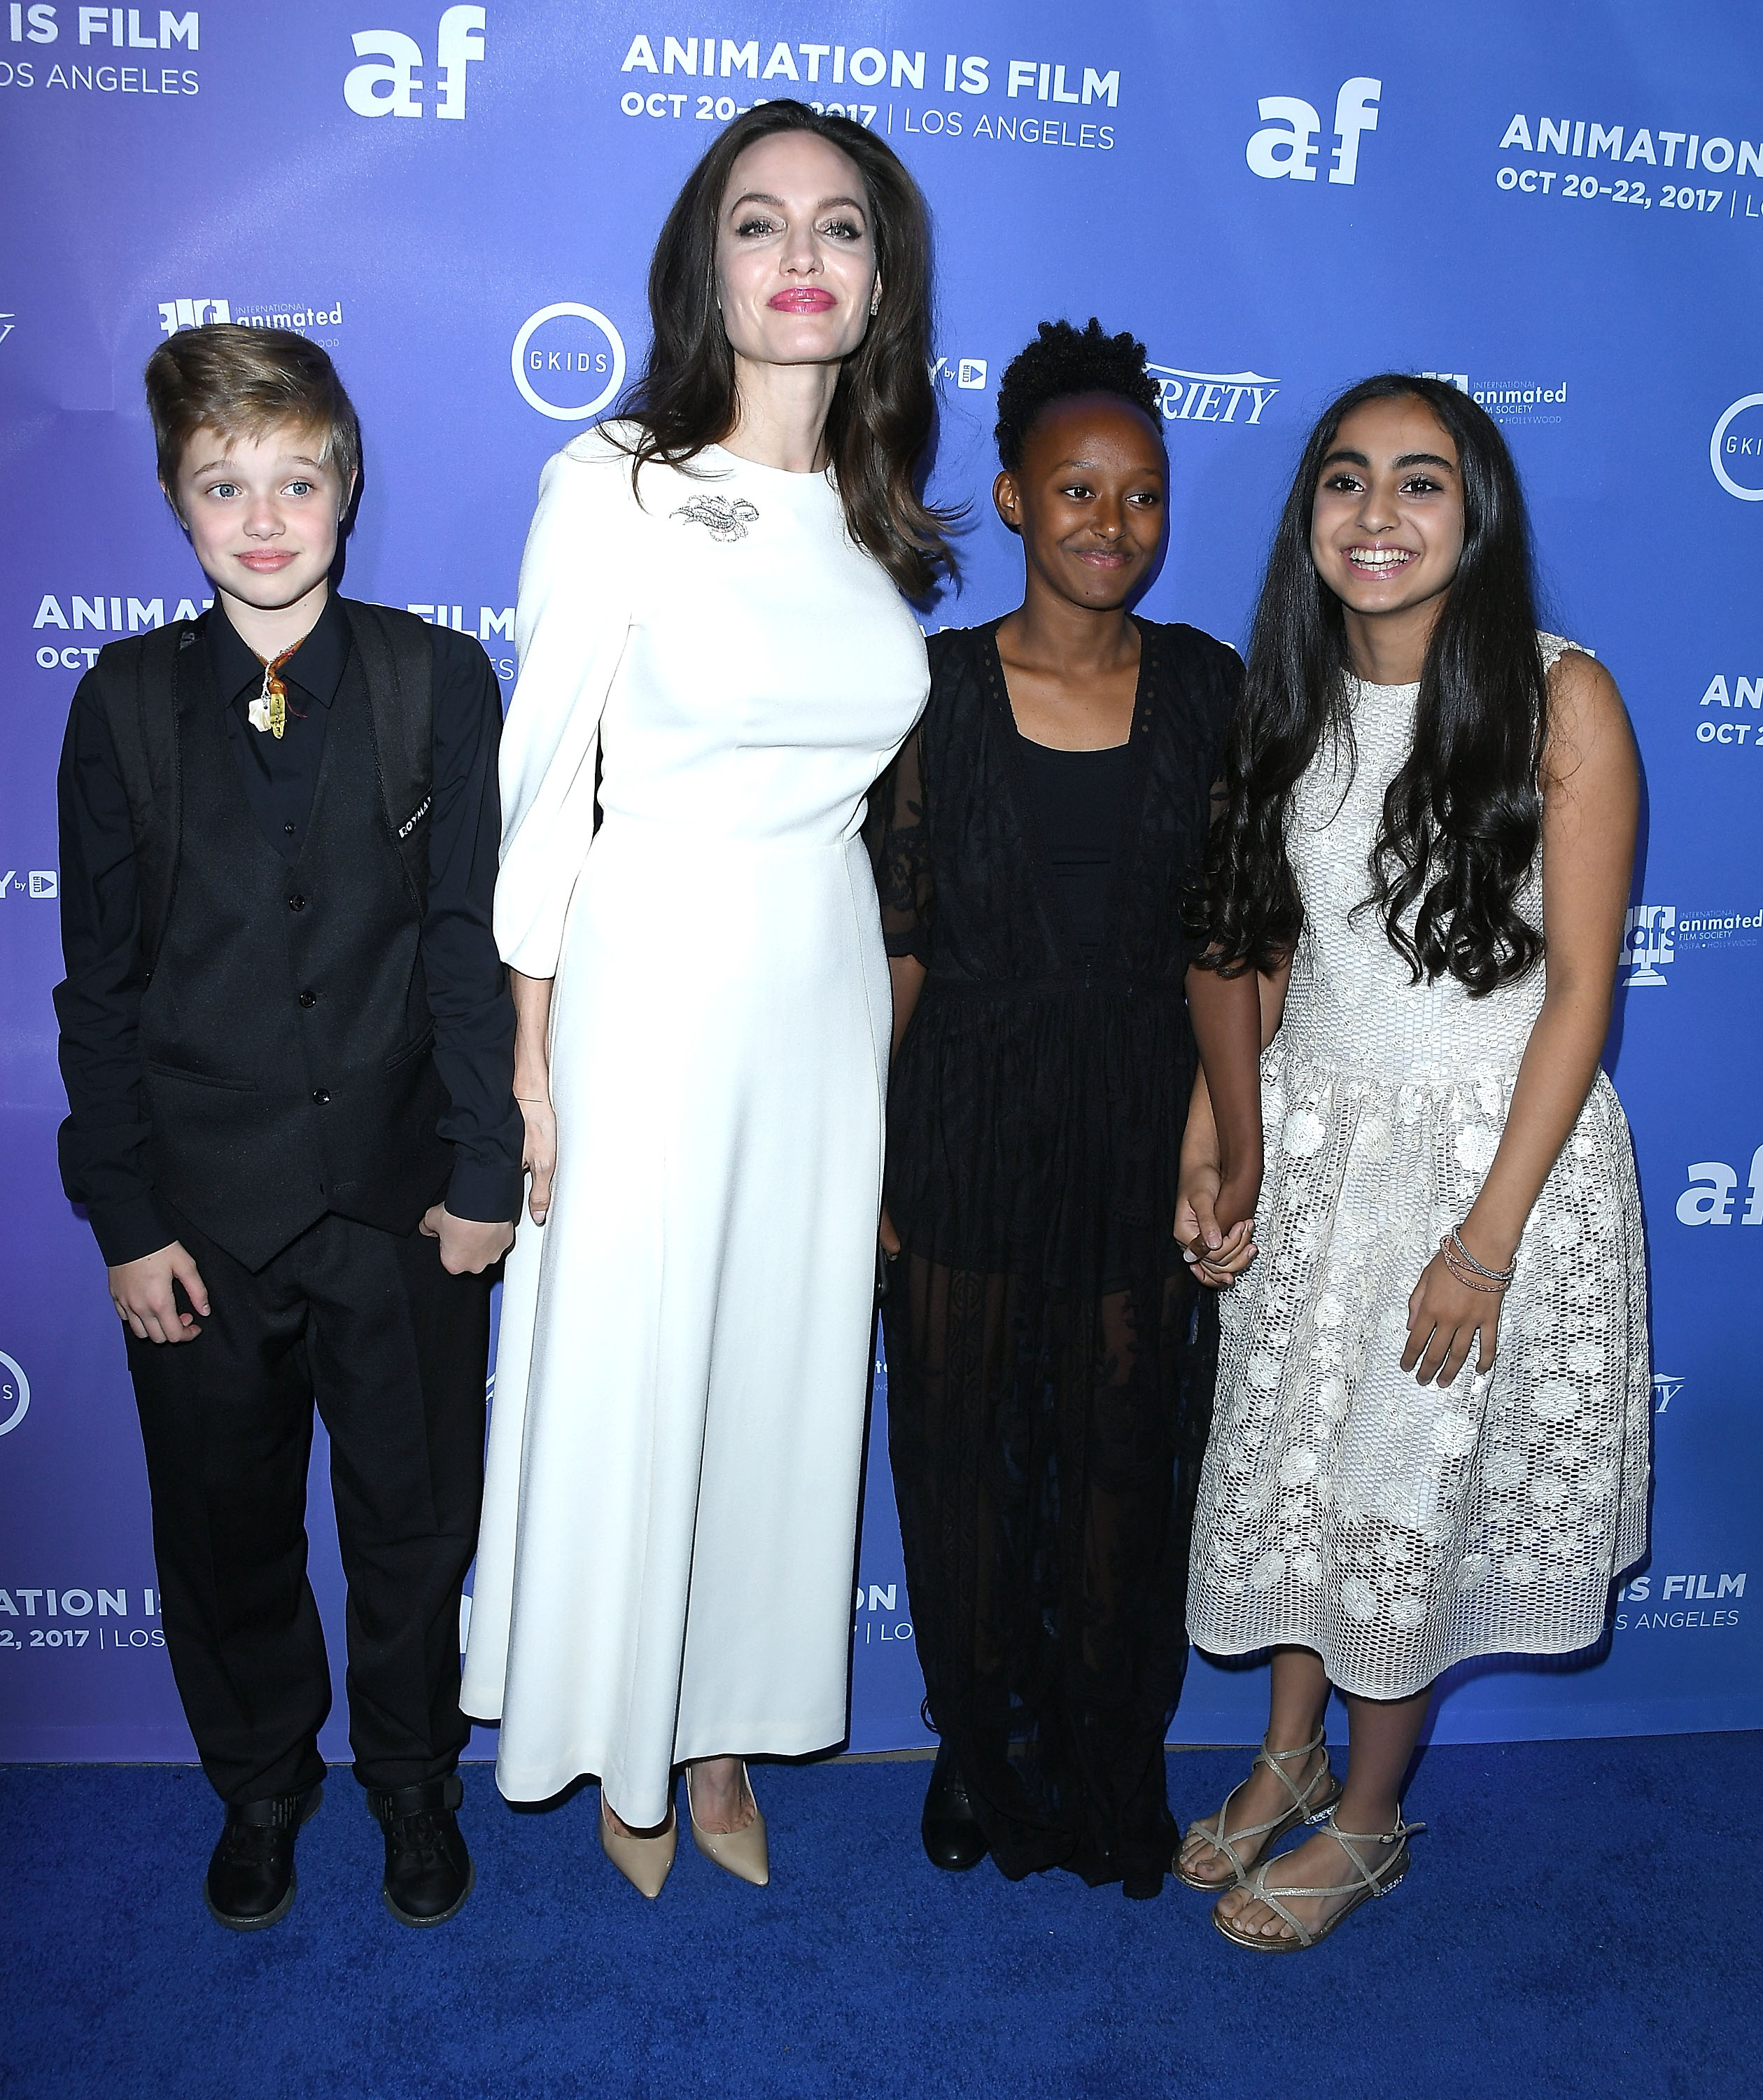 Shiloh Jolie-Pitt, Angelina Jolie, Zahara Jolie-Pitt and Saara Chaudry arrive at the Premiere Of Gkids' 'The Breadwinner' at TCL Chinese 6 Theatre on October 20, 2017 in Hollywood